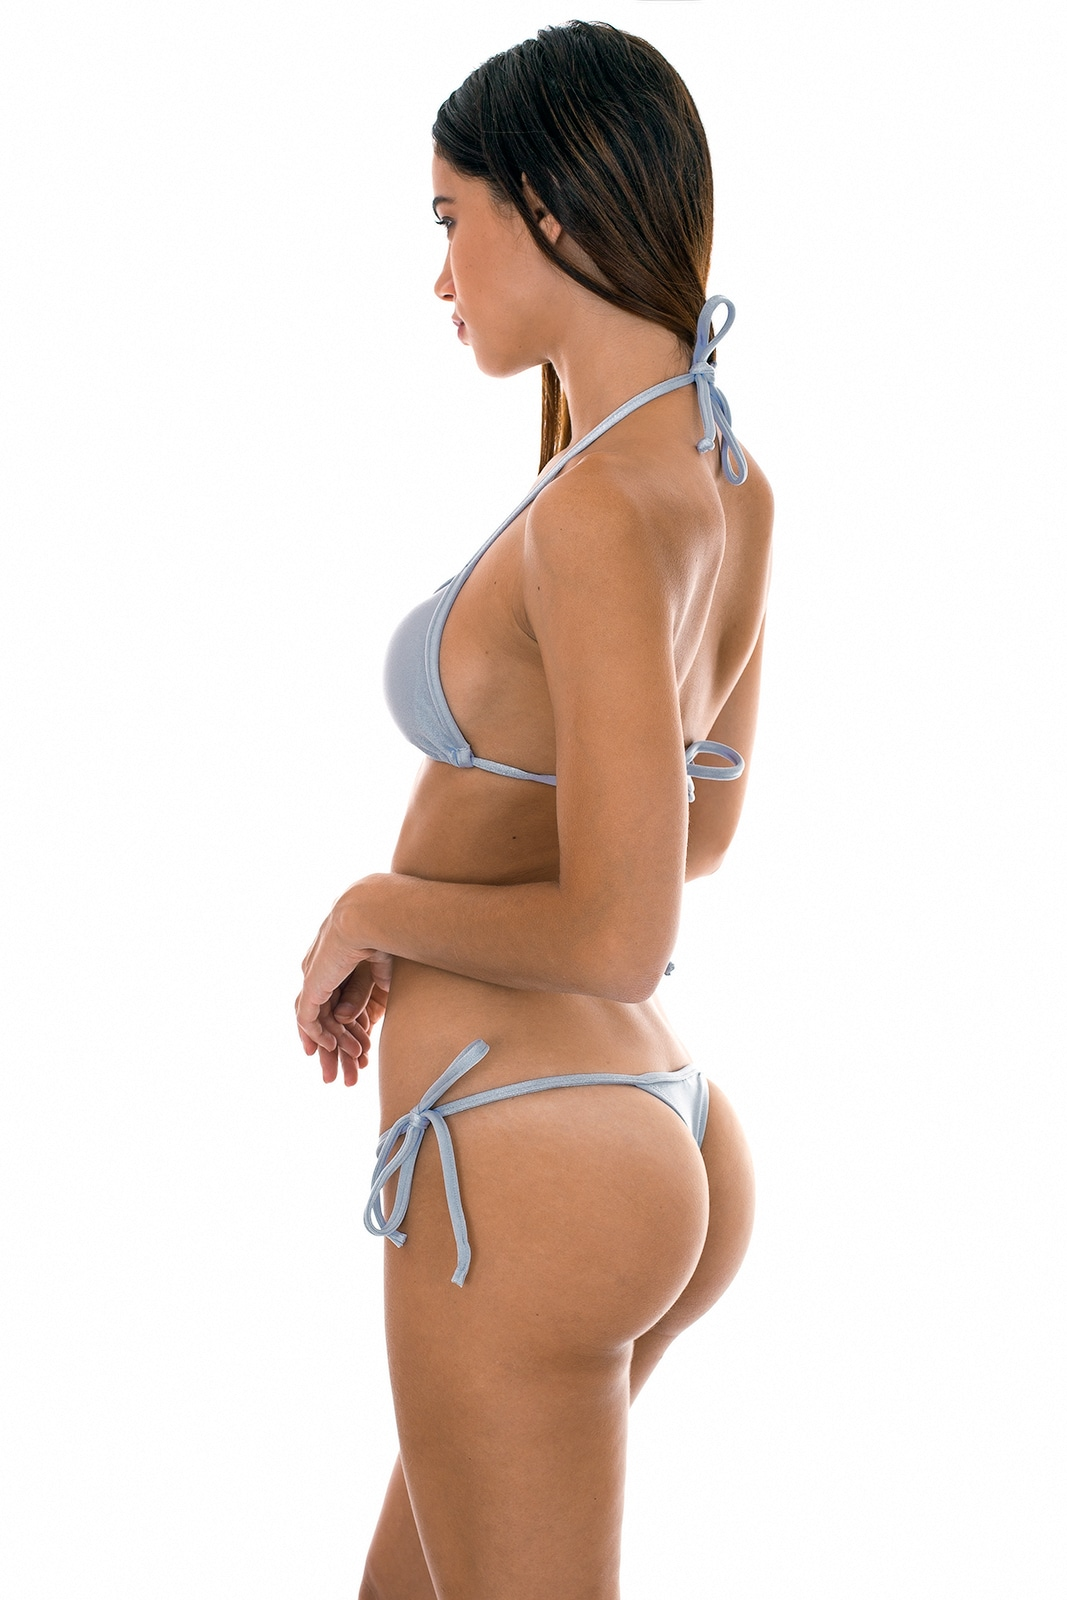 9461fc13f7519 Silver G-string Swimsuit Which Can Be Tied - Silver Tri Micro - Rio ...